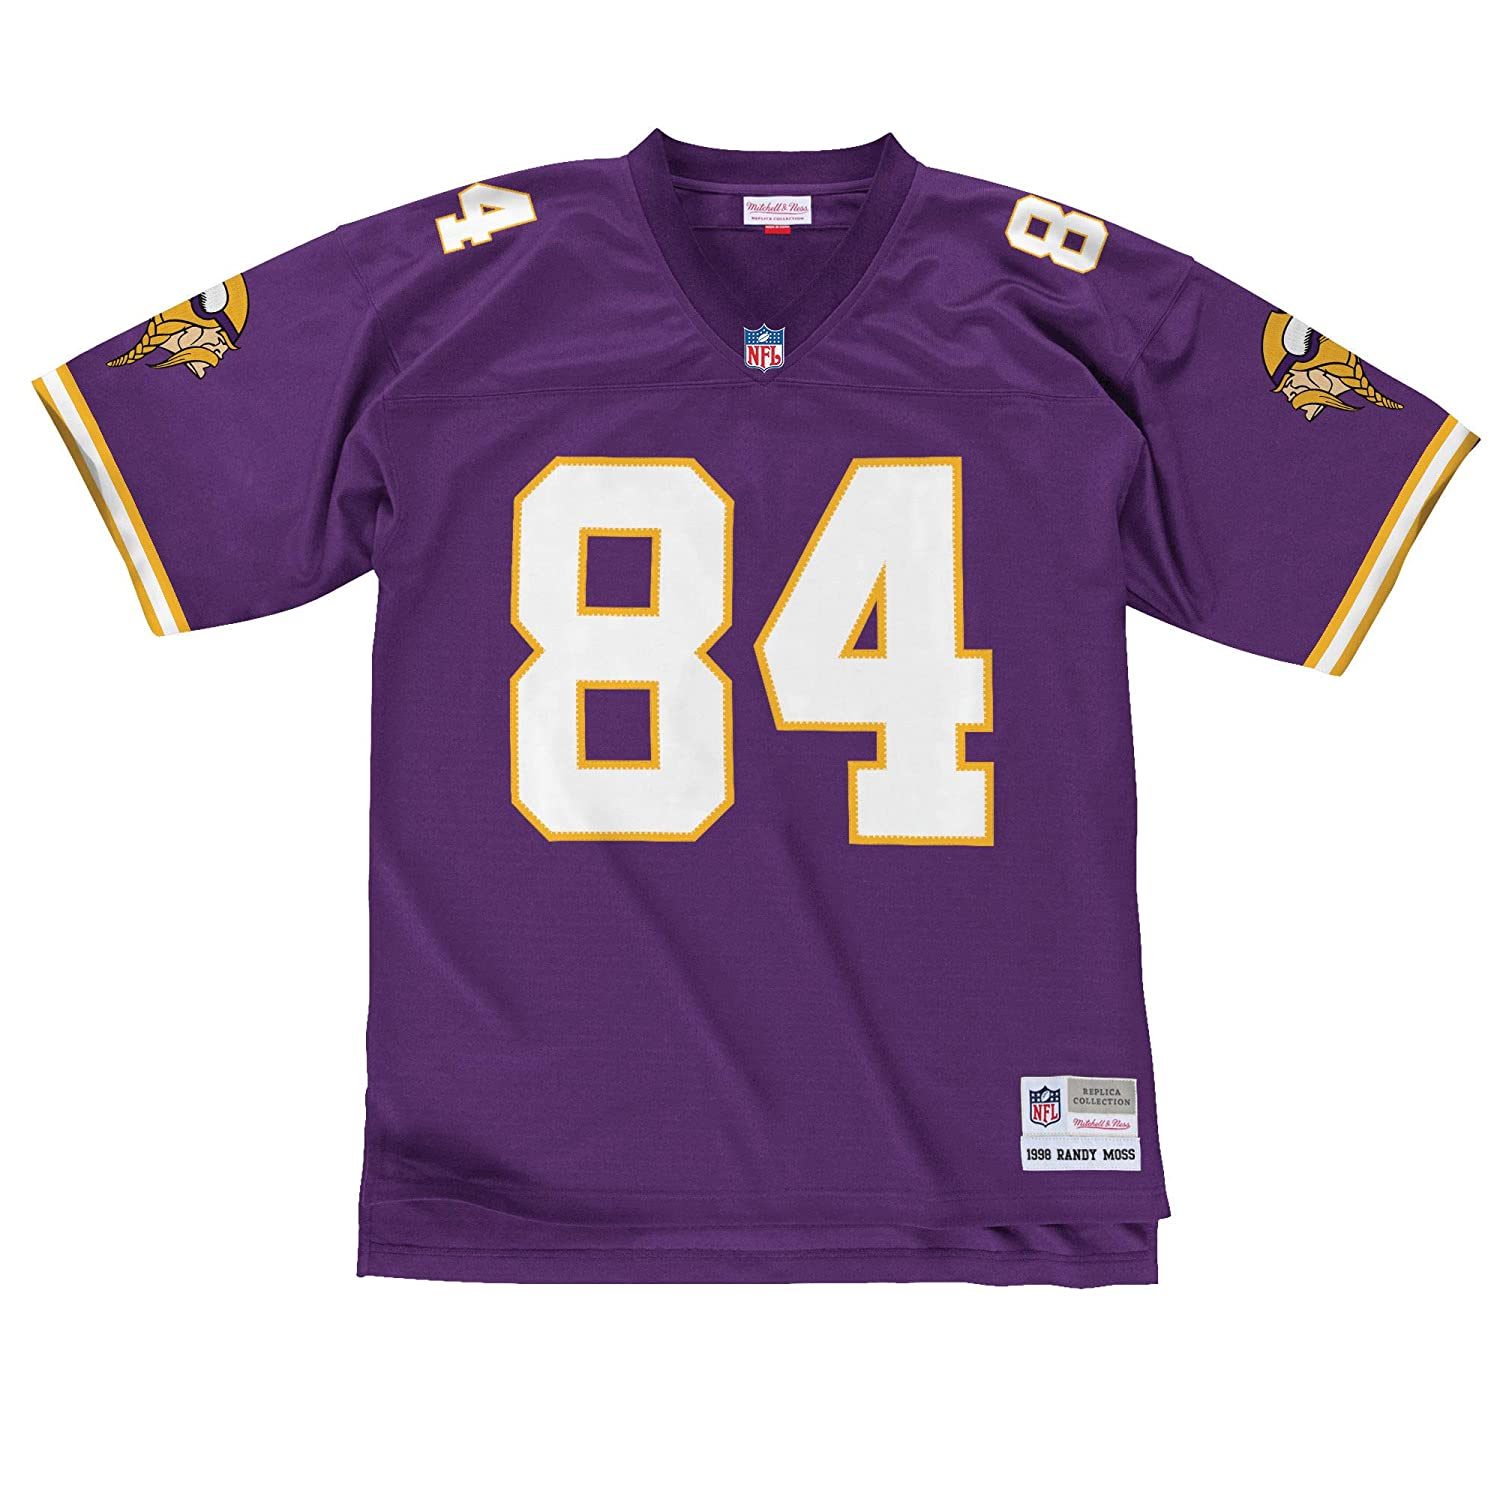 separation shoes 3ab8a a47ce Mitchell & Ness Randy Moss Minnesota Vikings NFL Throwback Premier Jersey